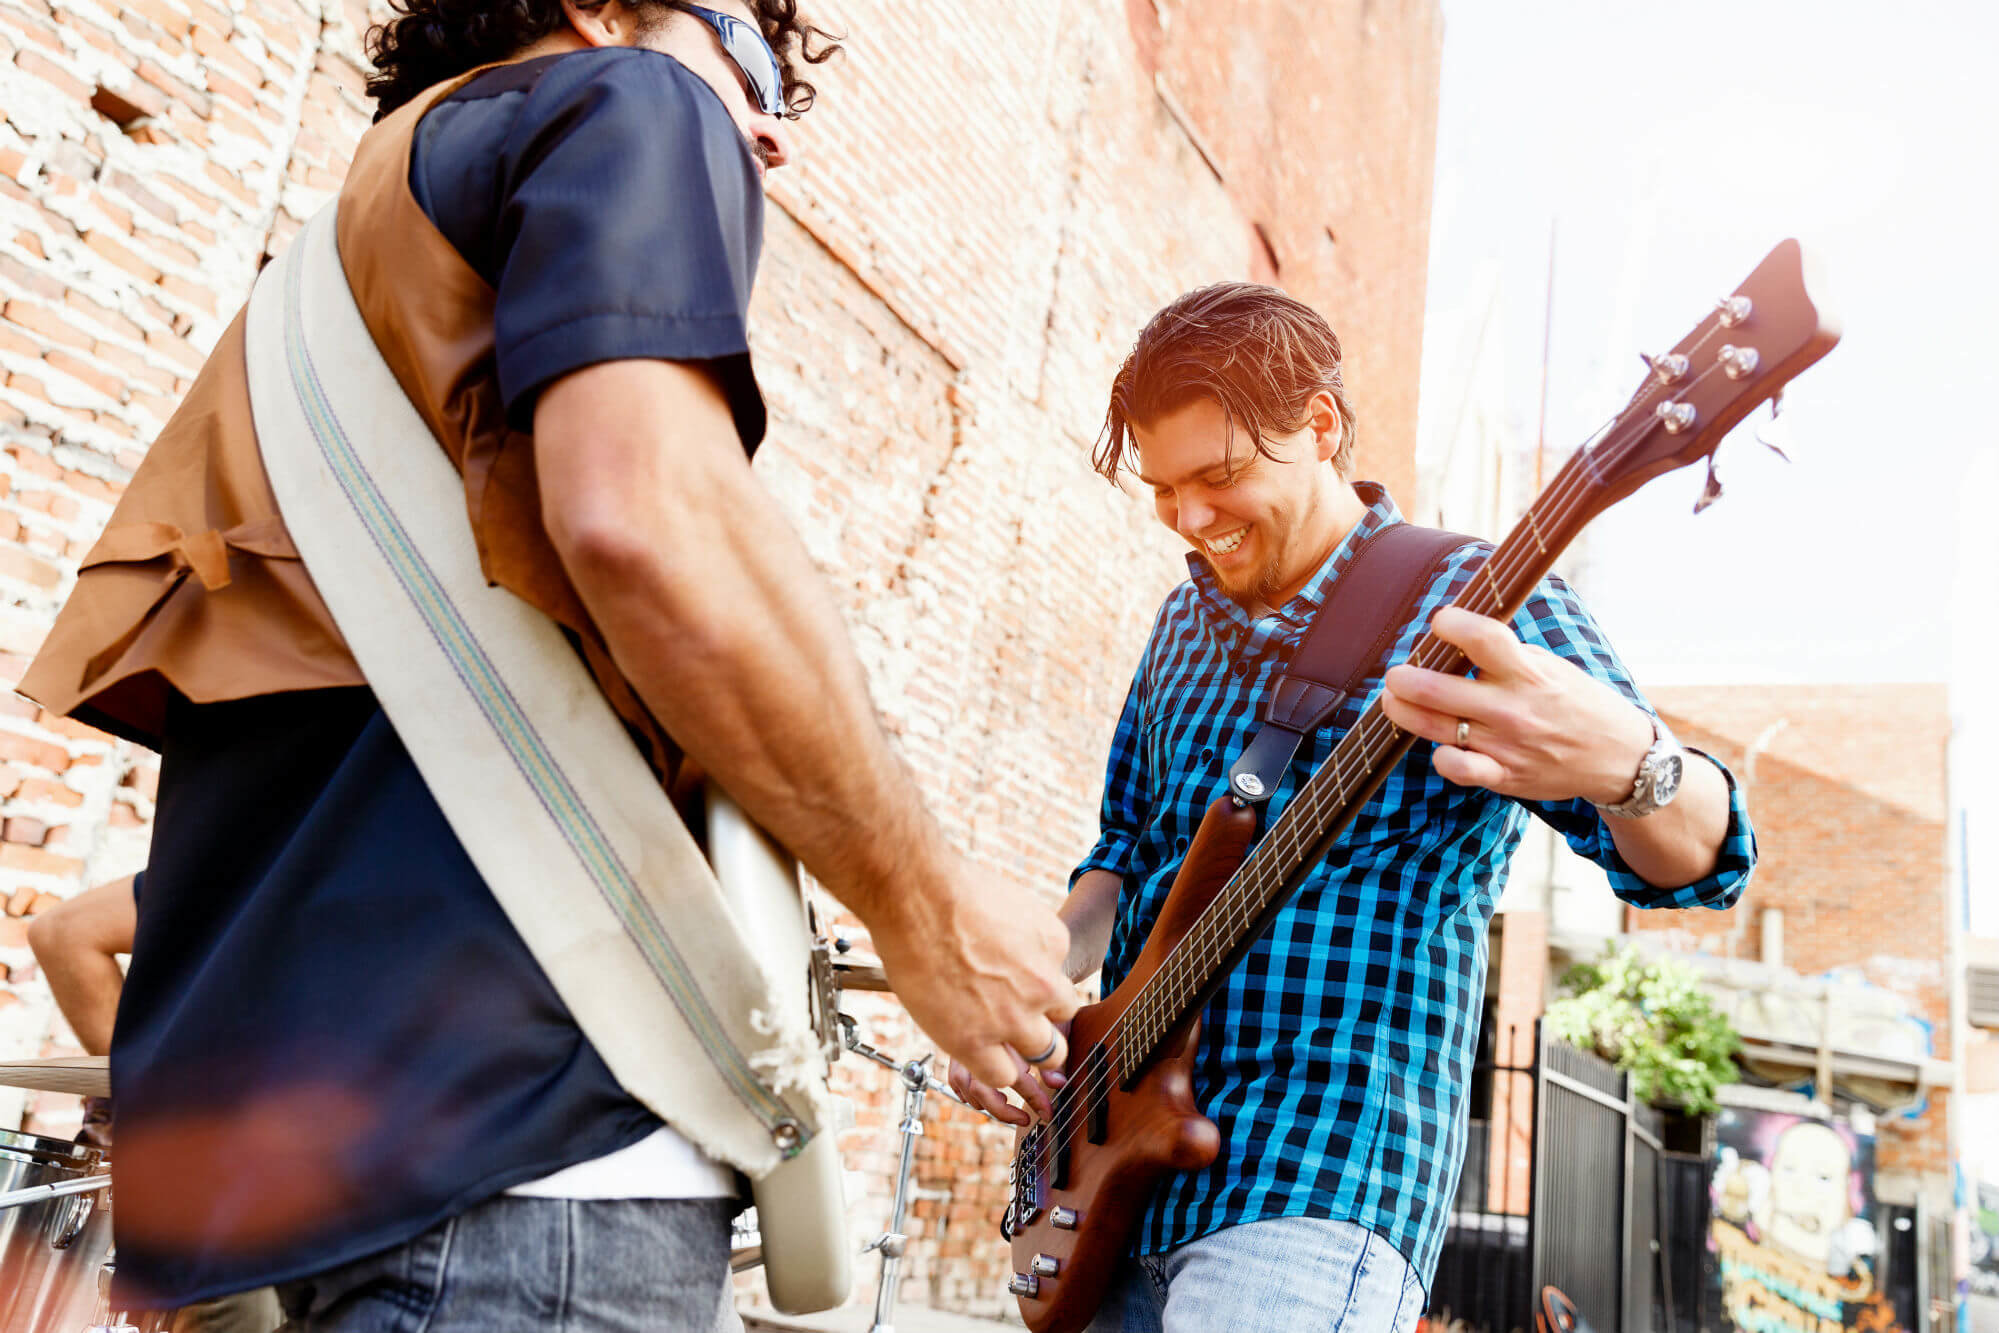 Musicians playing guitar on the street